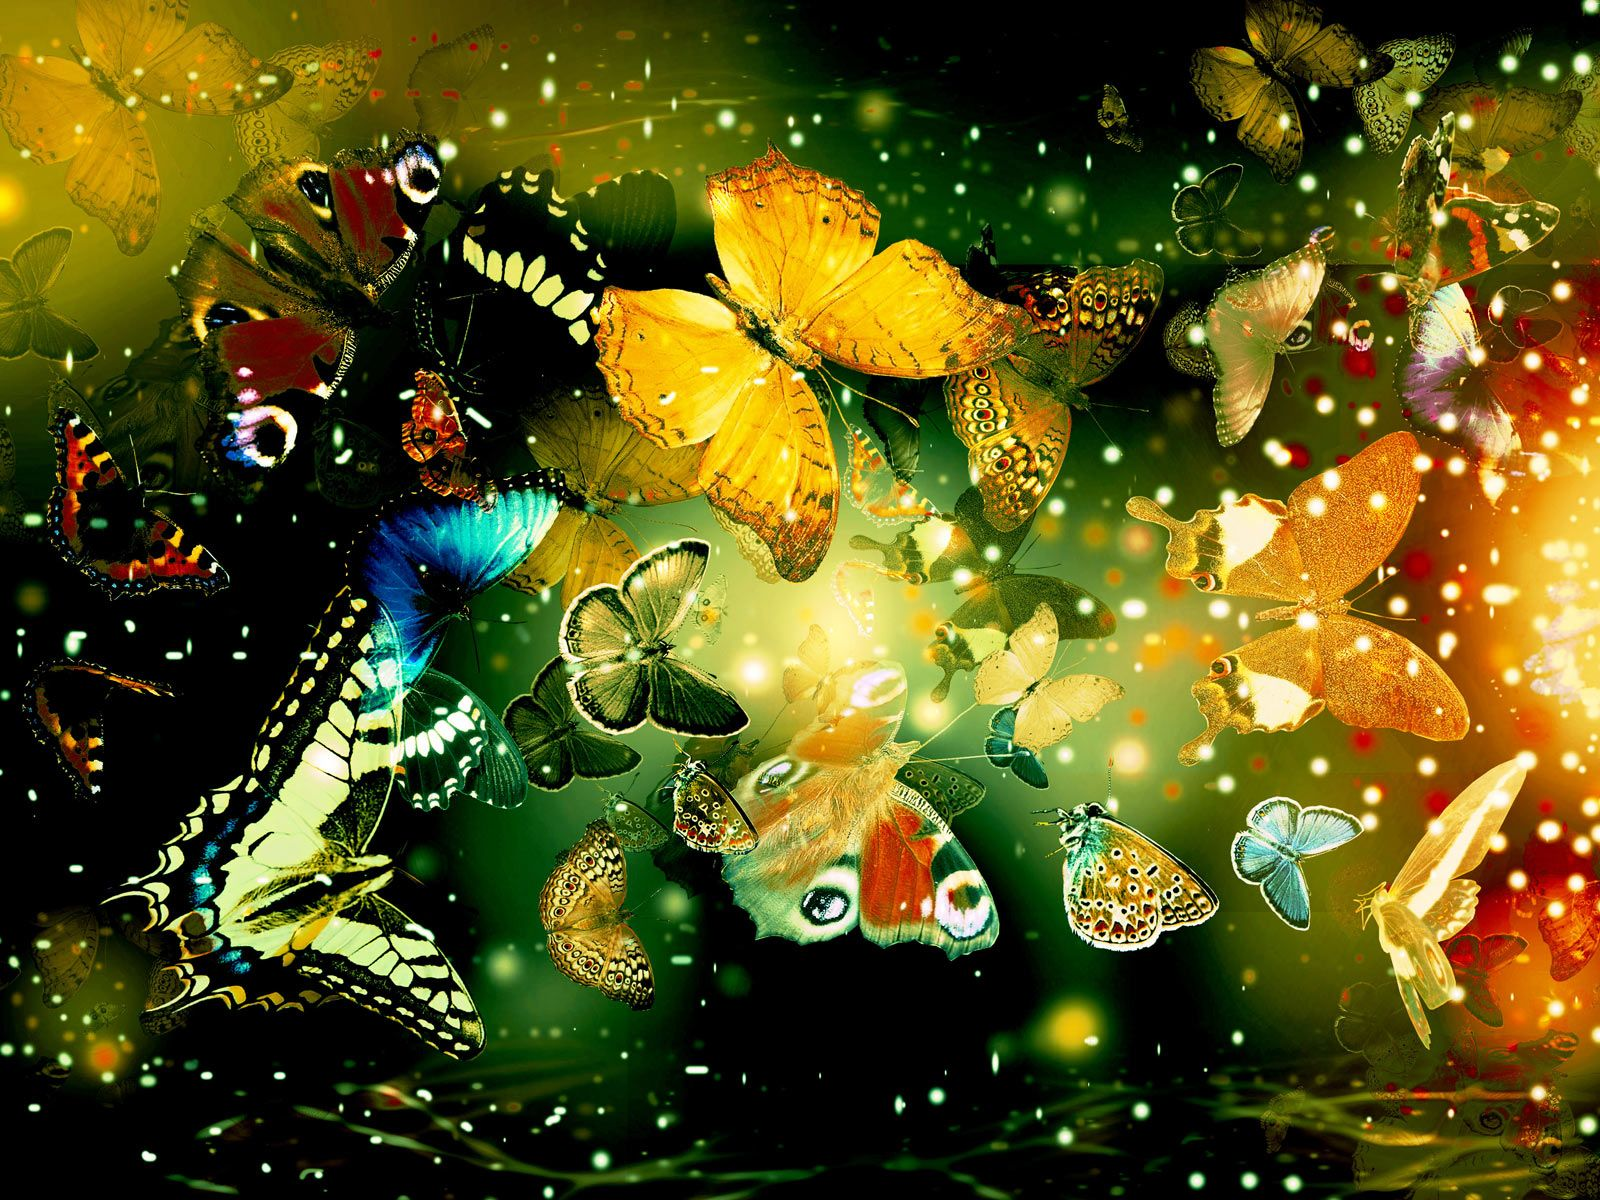 free butterflies wallpaper and other animal desktop backgrounds get free computer wallpapers of butterflies